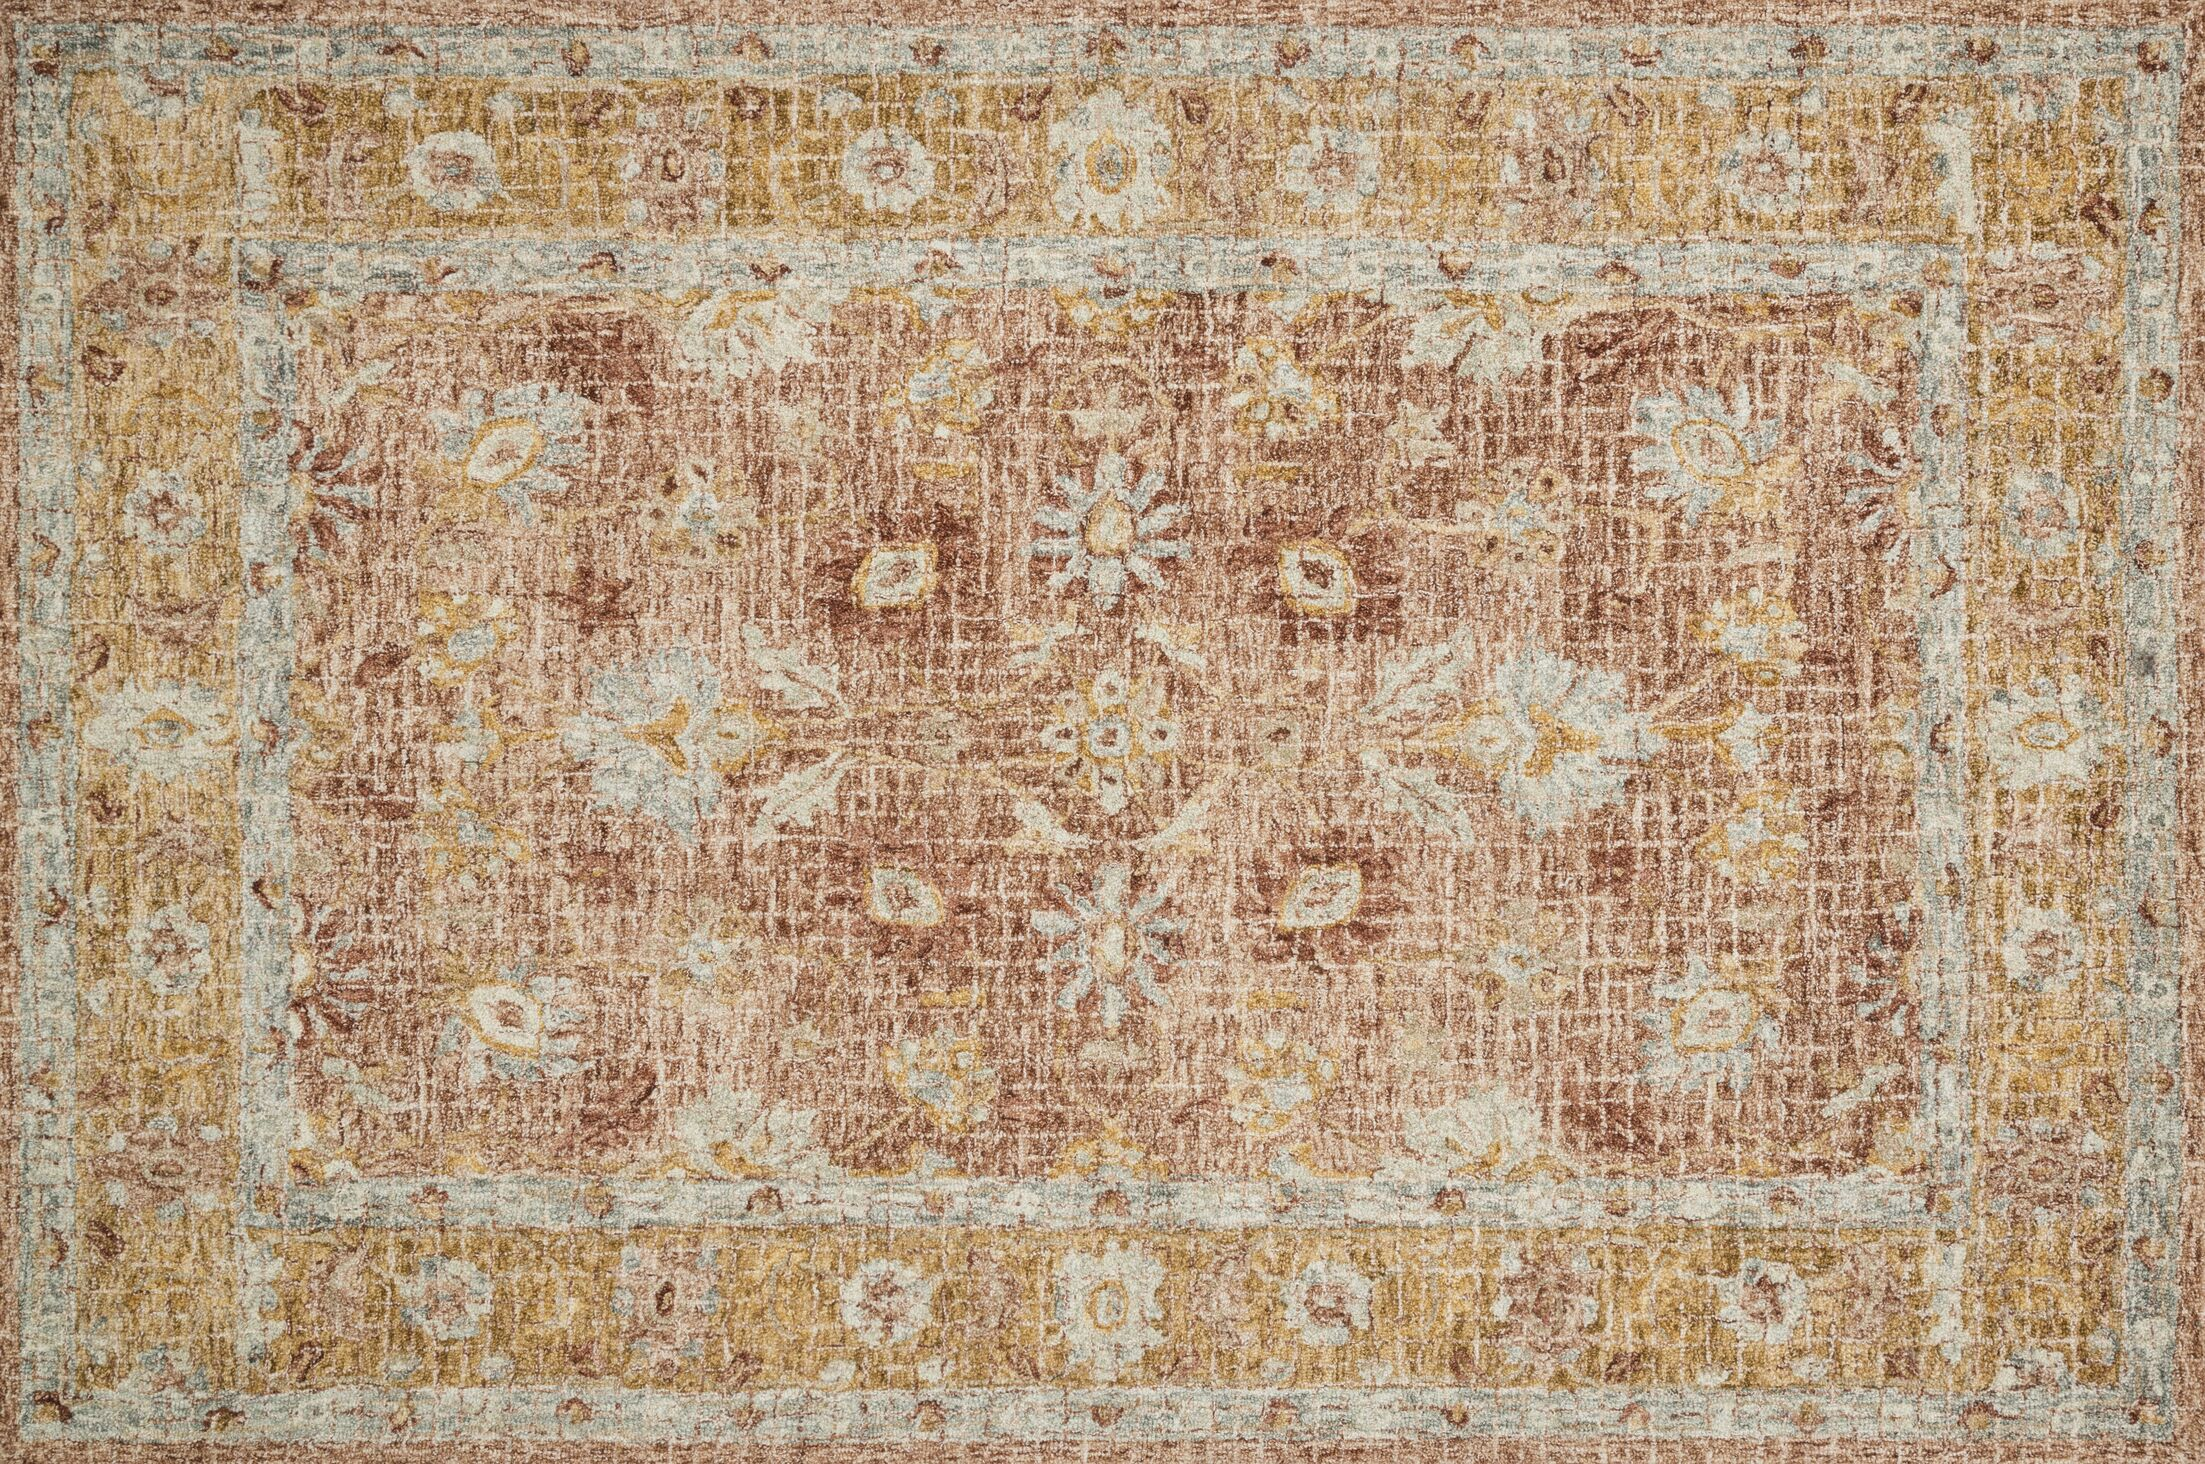 Fitzwater Hand-Hooked Wool Terracotta/Gold Area Rug Rug Size: Rectangle 2'6